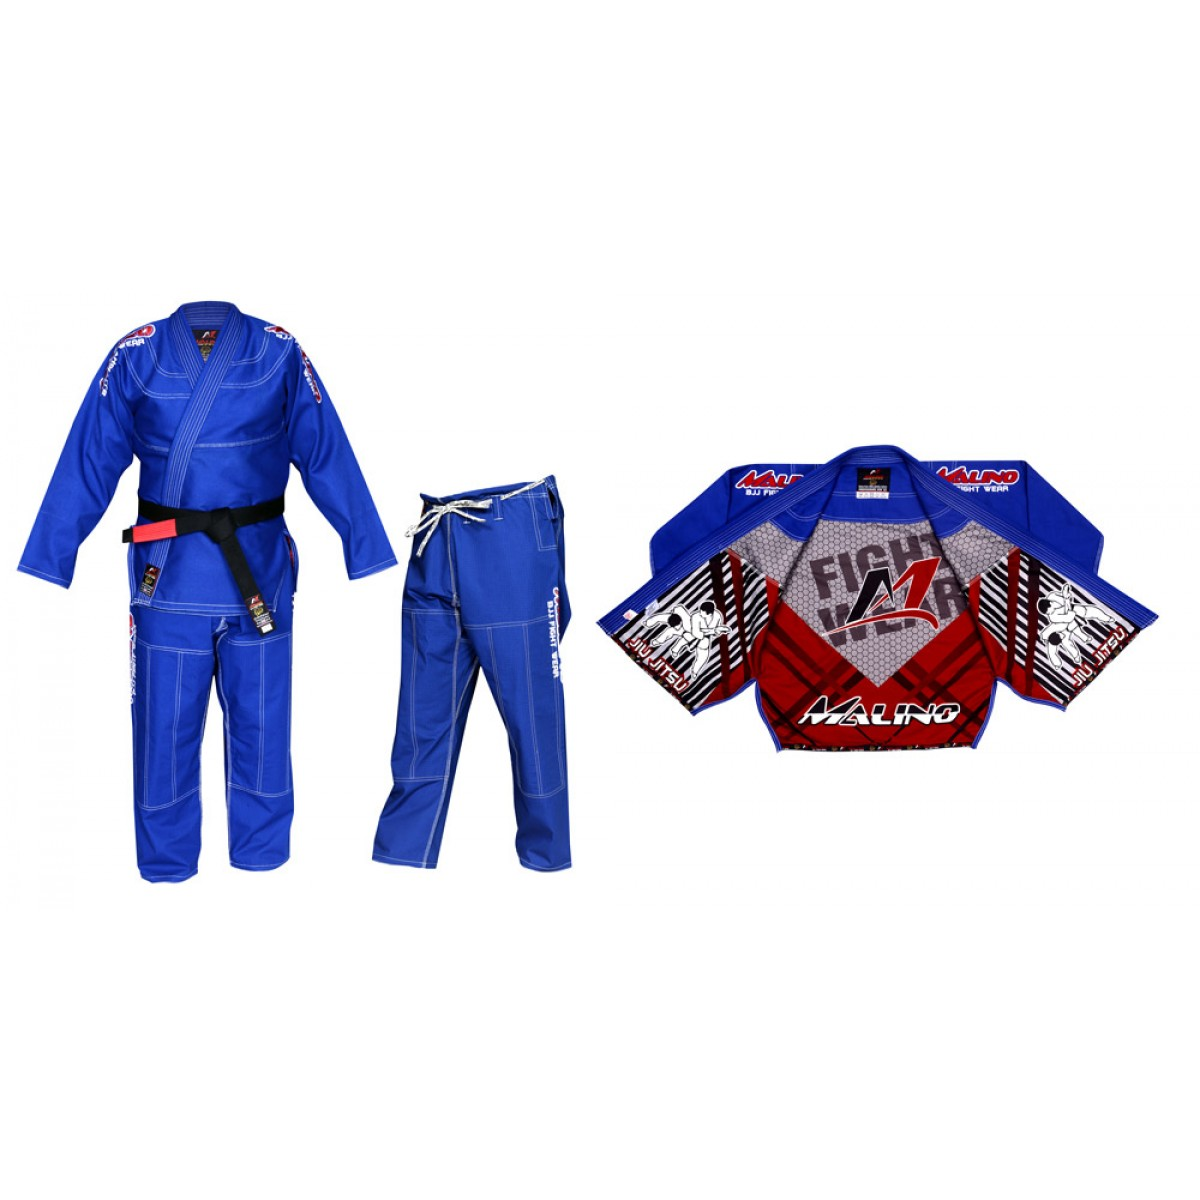 Malino BJJ Gi Full Sublimation Blue Pearl Weave Cotton 450Gsm